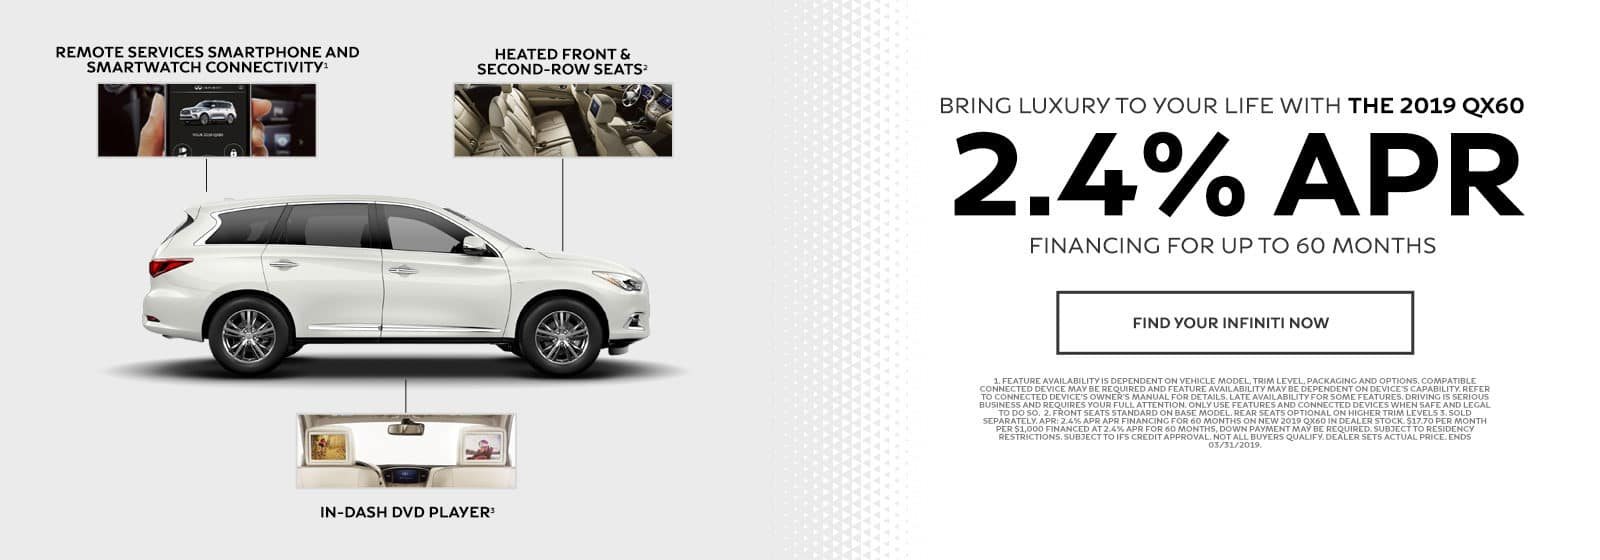 Bring luxury to your life with the 2019 QX60 - 2.4% APR financing for up to 60 months - Find your INFINITI now